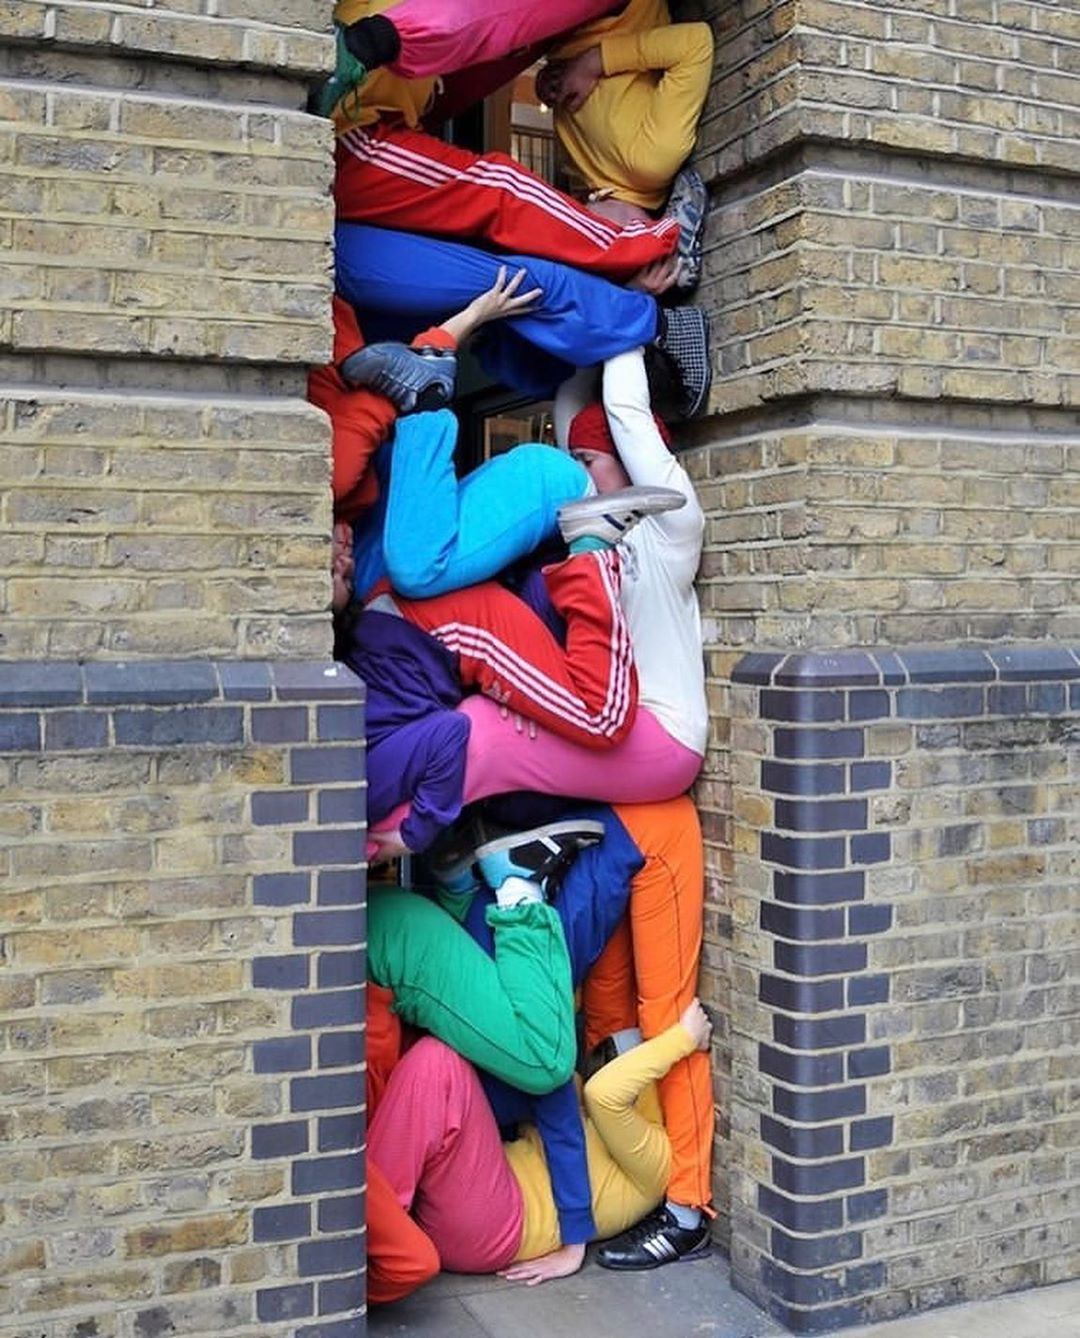 Bodies in urban spaces, a series by Willi Dorner